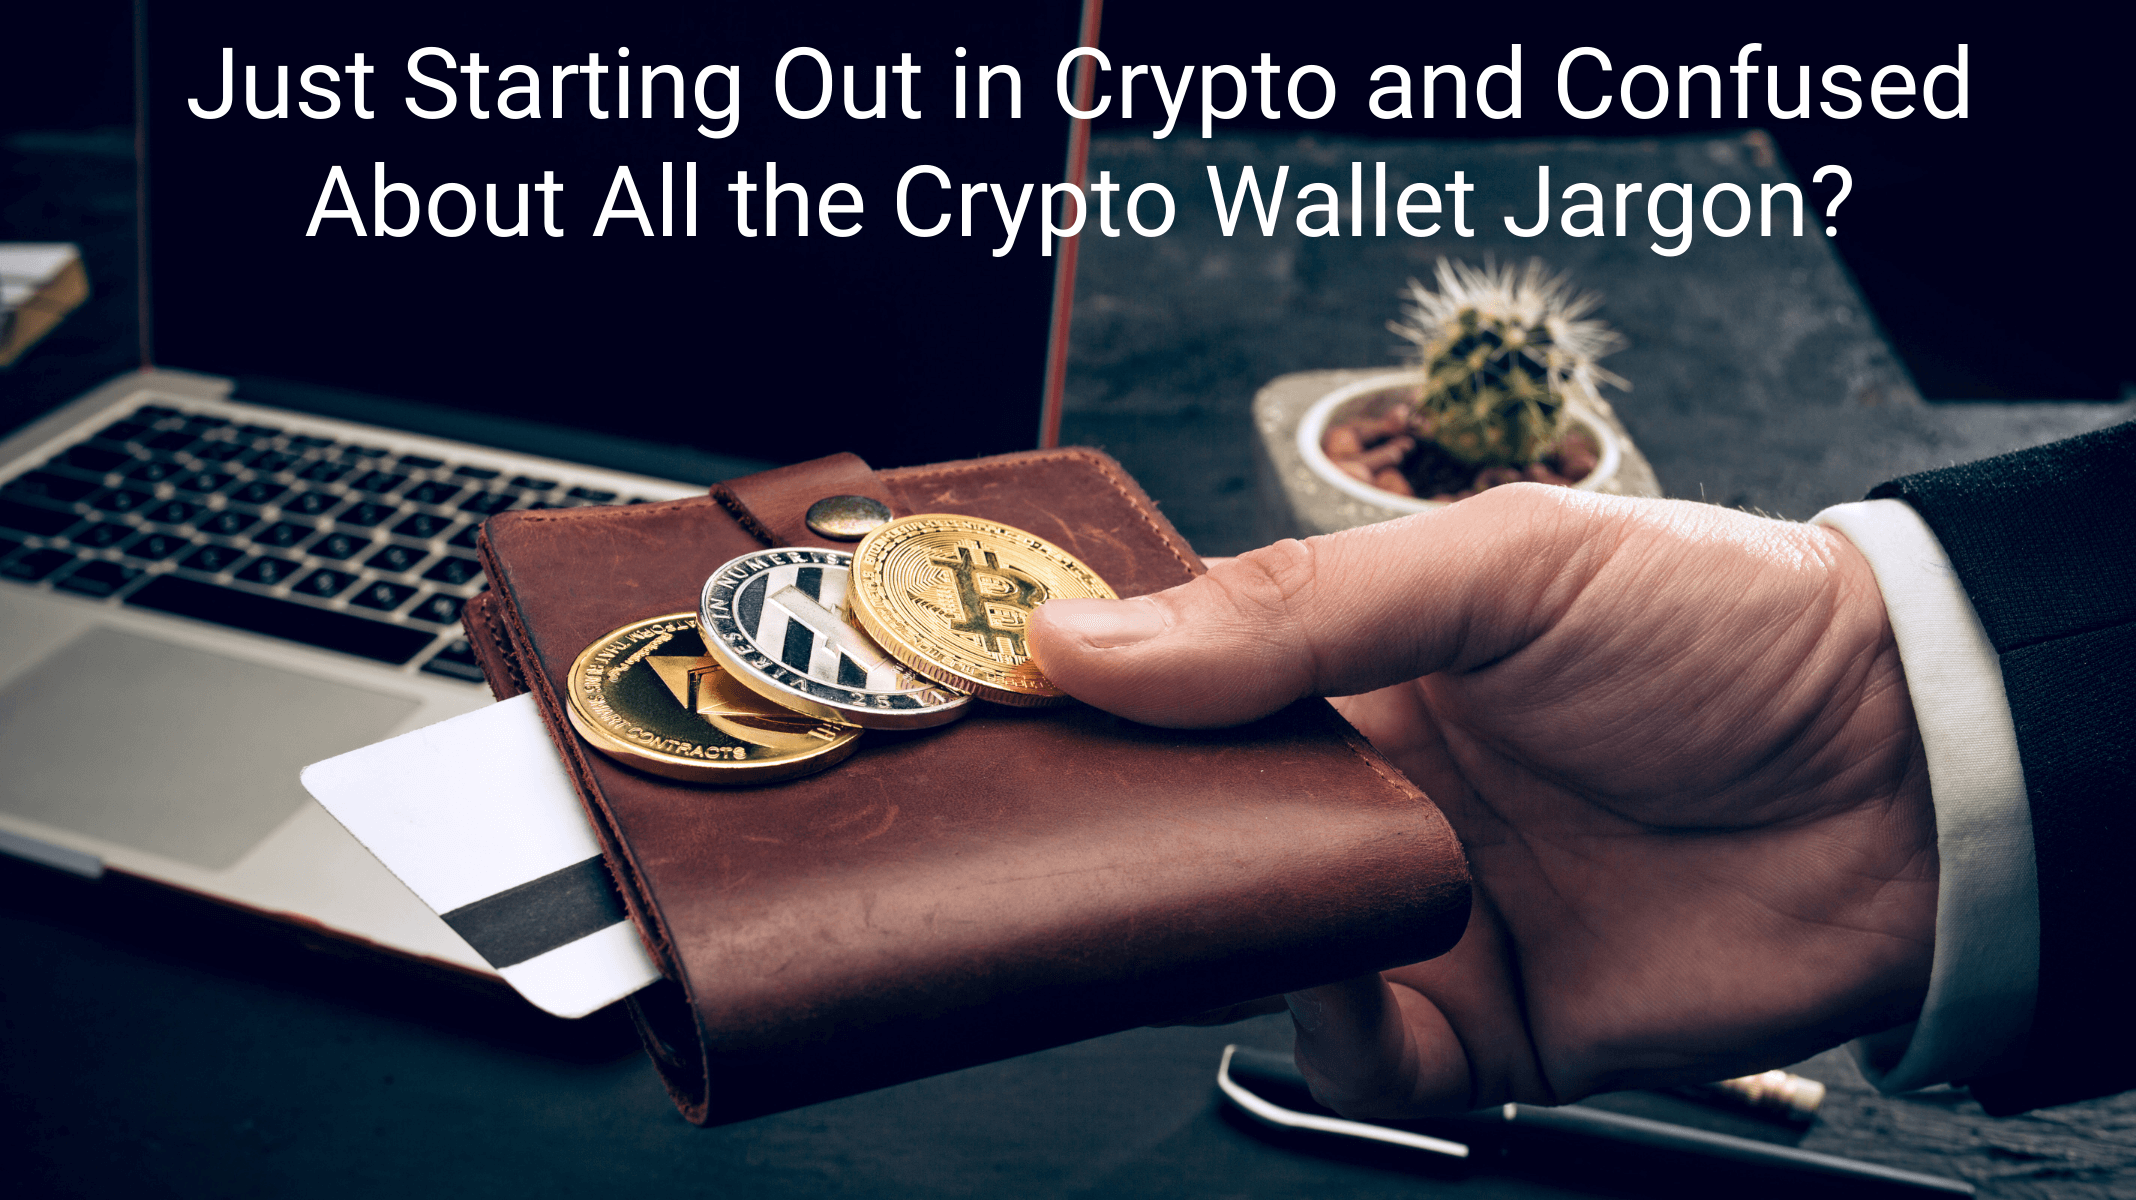 Just starting out in Crypto and confused about all the crypto wallet jargon?